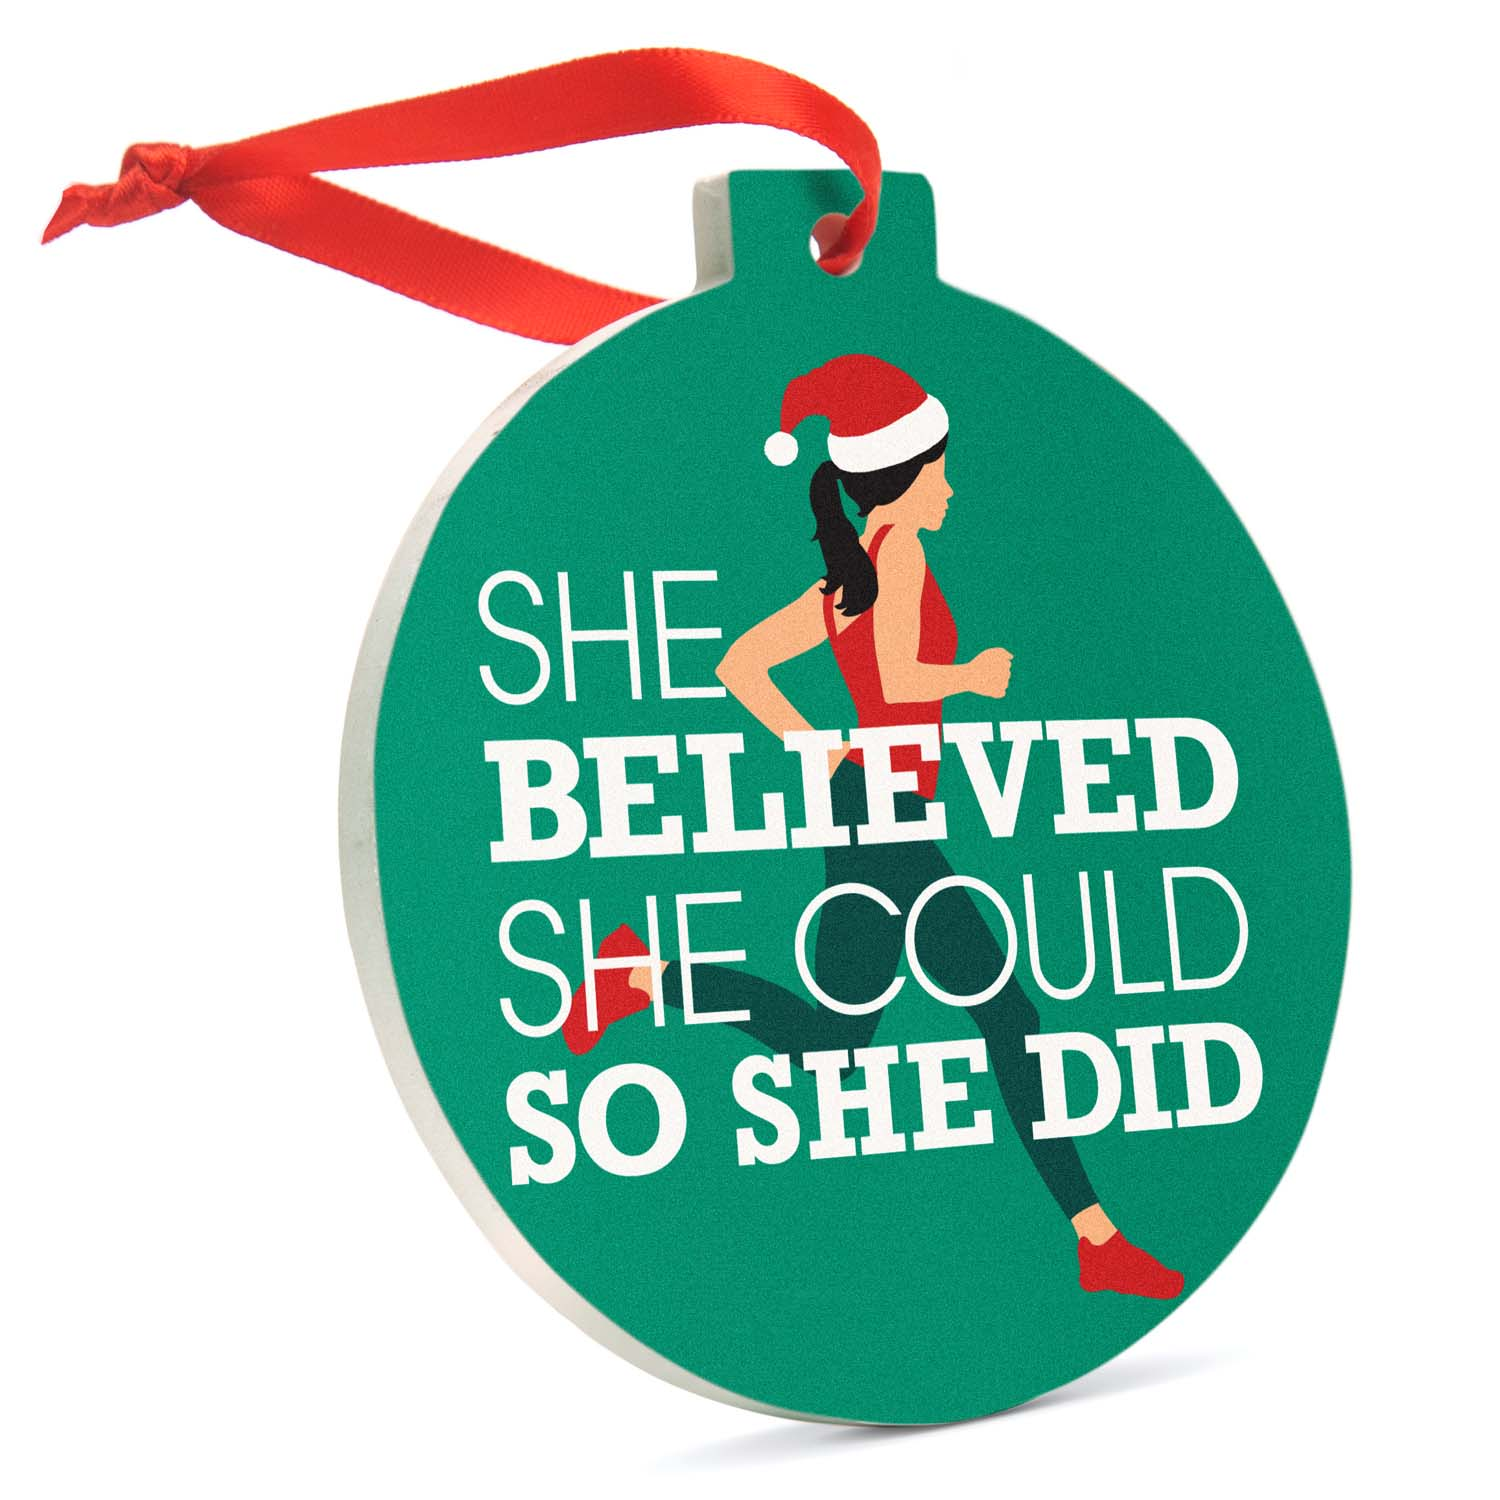 Runner She Believed She Could So She Did Charm Keychain 5k Keychain Perfect gift for Runners Gift for Girls and Women Running Jewelry